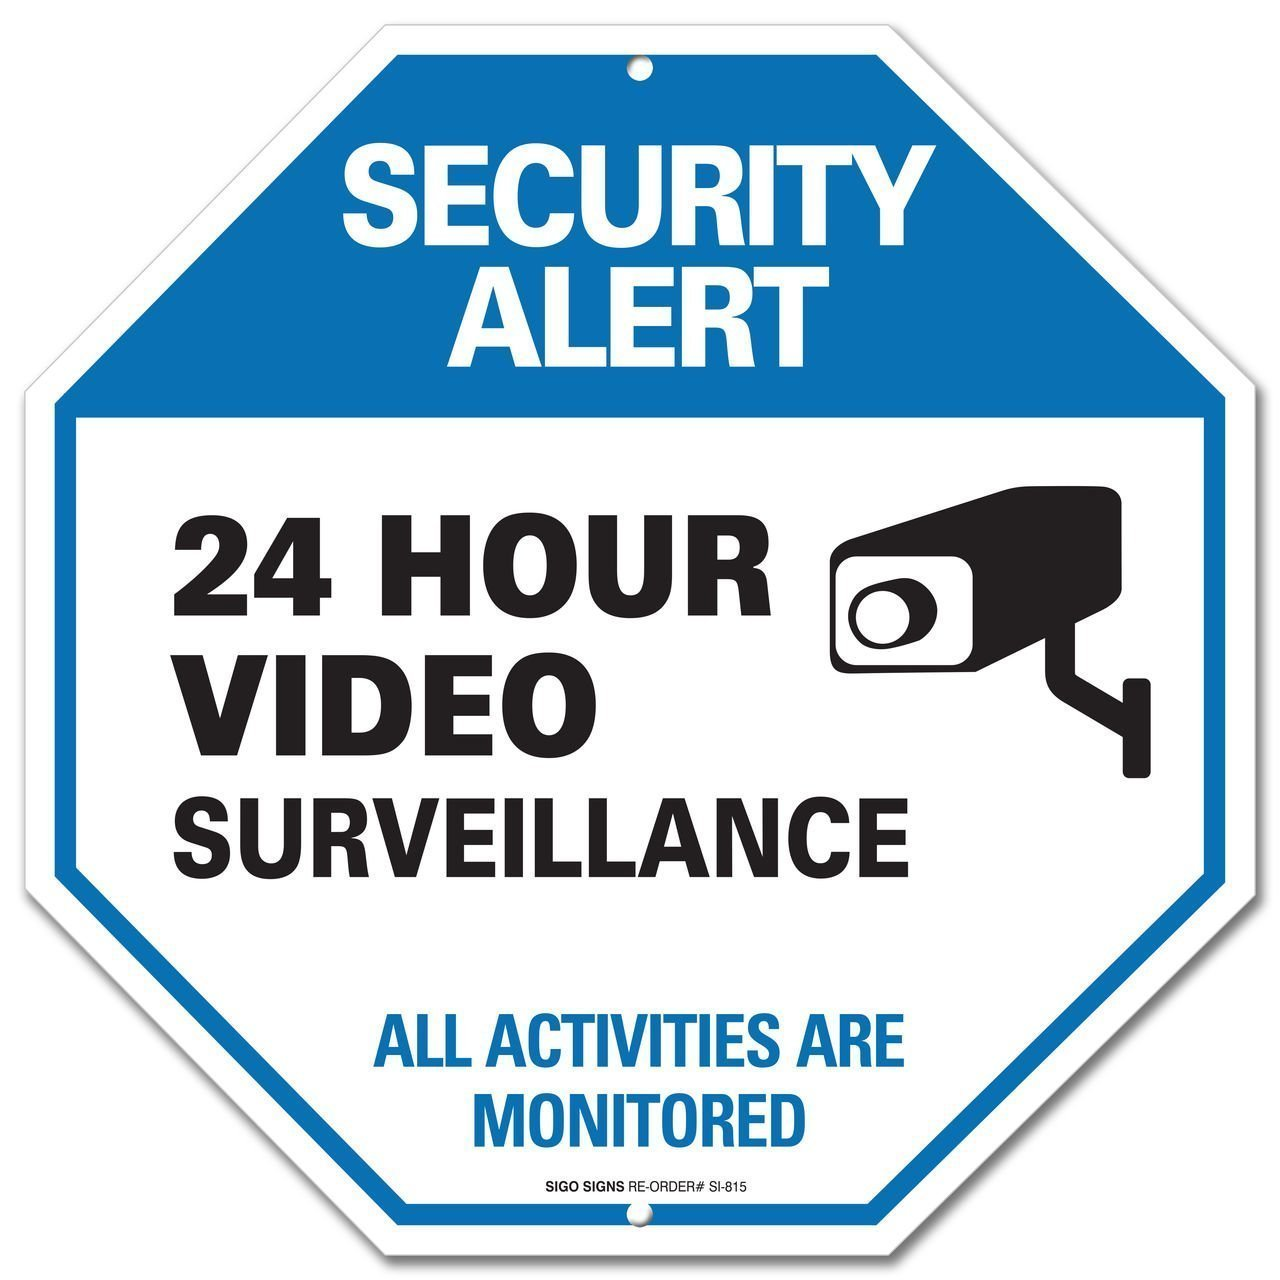 Video Surveillance Sign - CCTV Security Alert - 24 Hour Surveilance All Activities Are Monitored Sign - Legend'' Large 12 X 12 Octagon Rust Free 0.40 Aluminum Sign